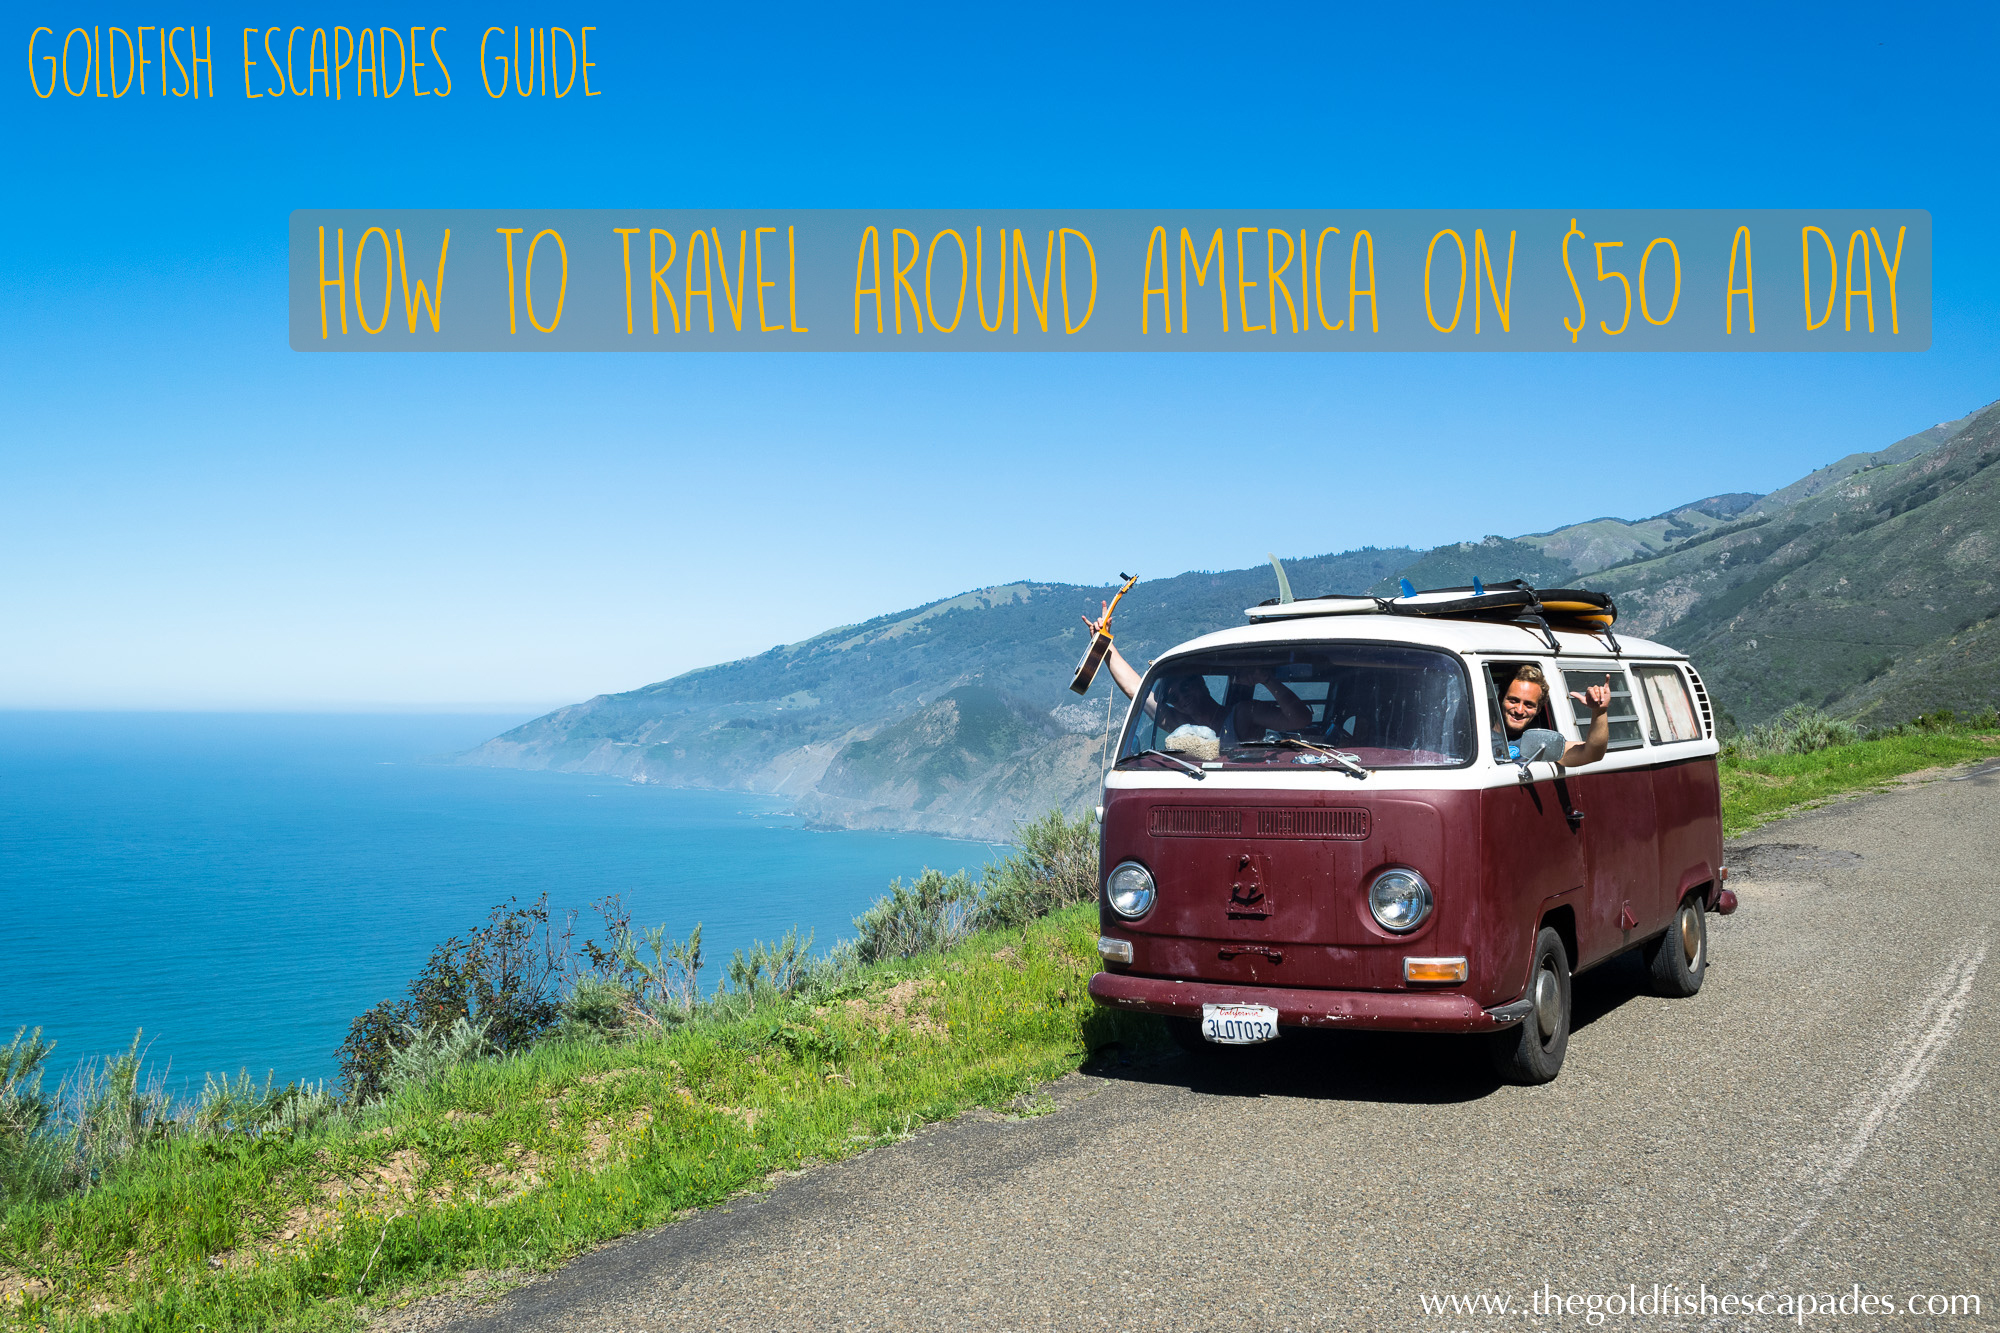 Go Via Trip Planner Road Trip Planner How To Travel Around The Us On 50 A Day